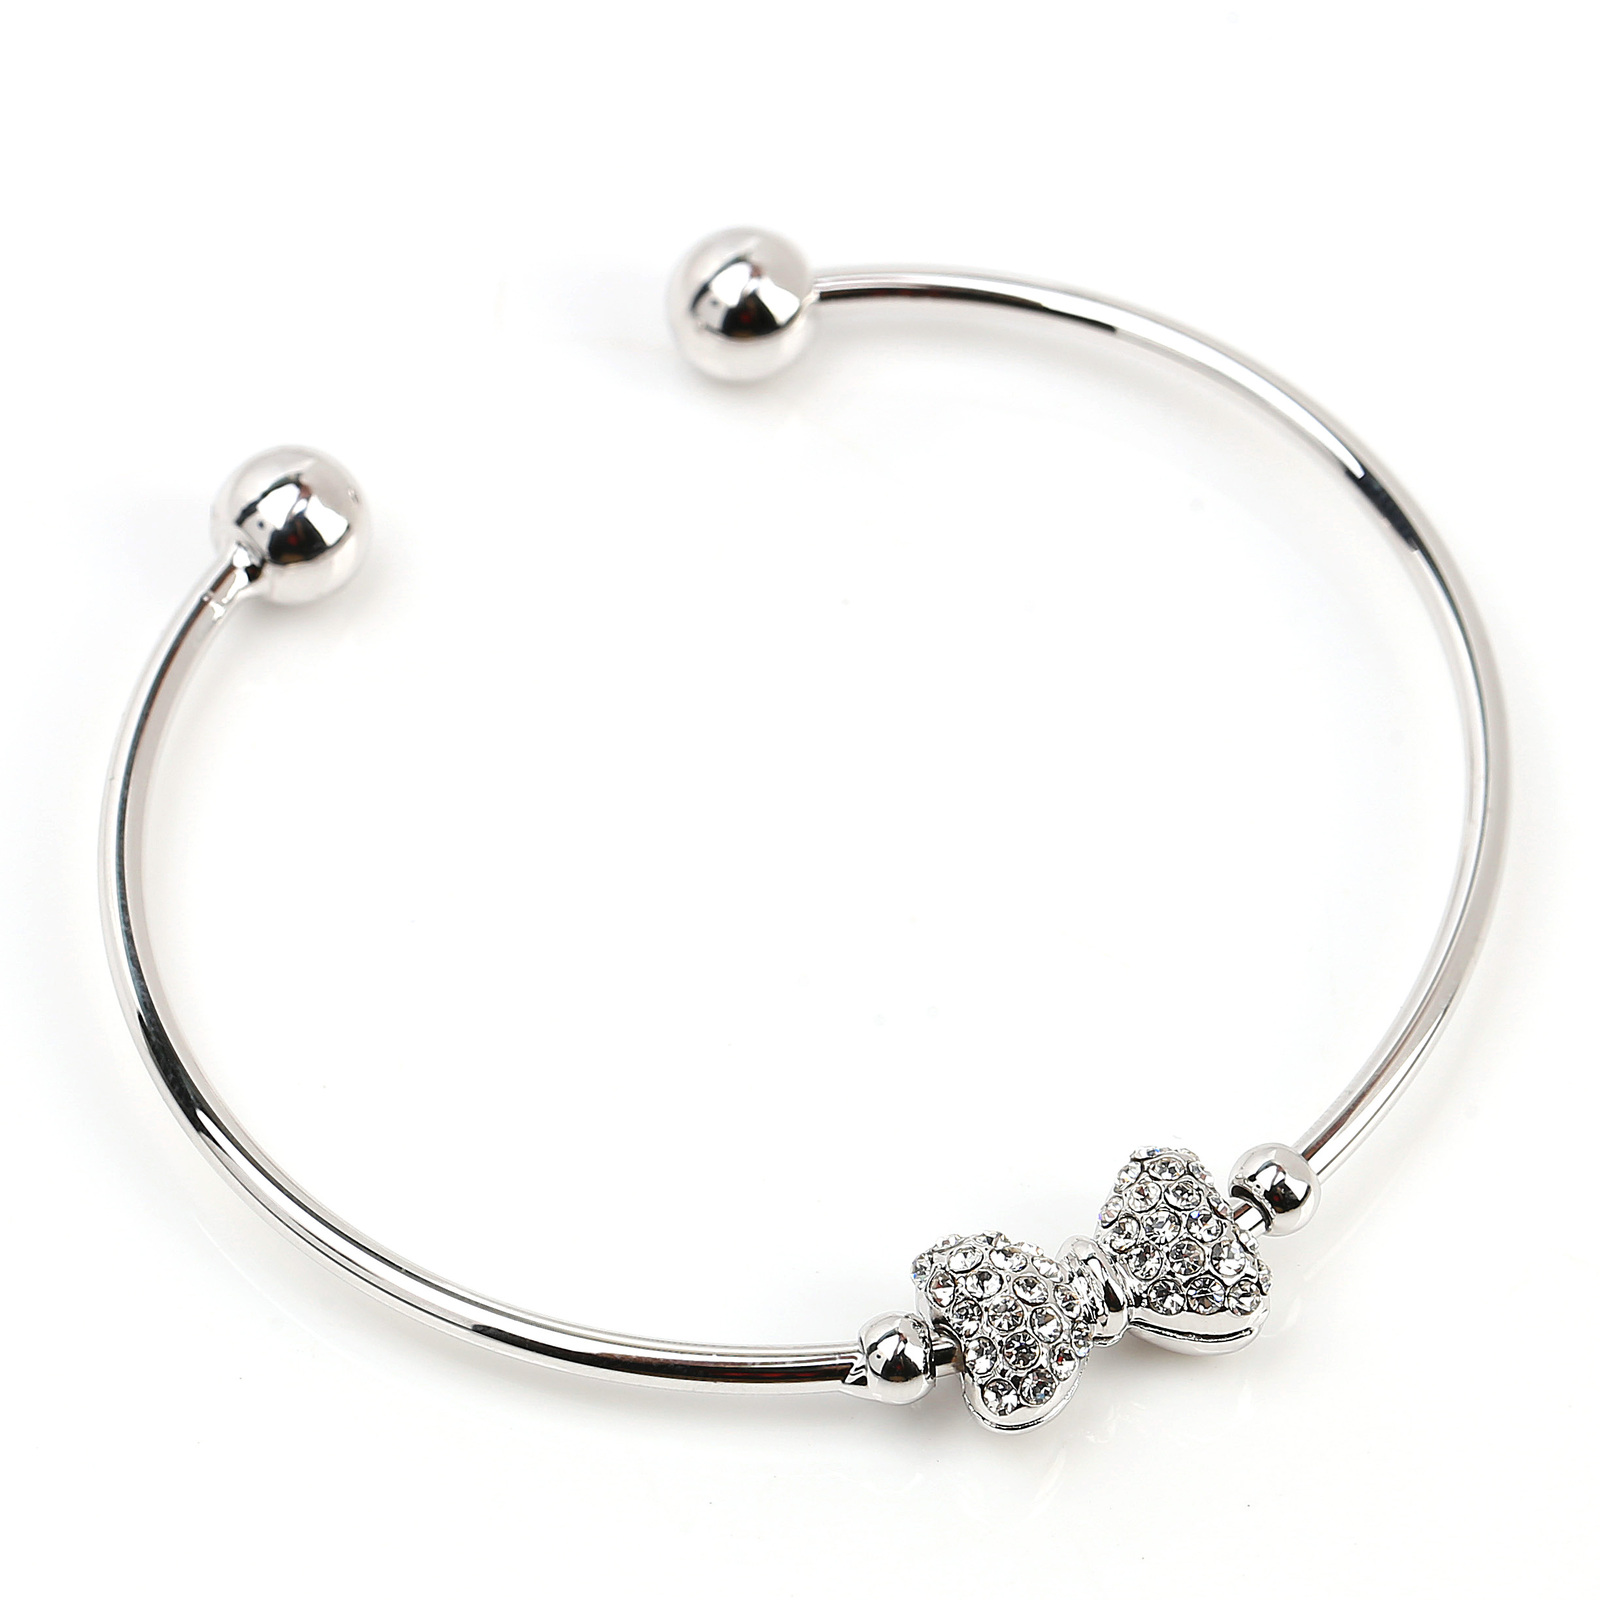 UE-Trendy Silver Tone Designer Bangle Bracelet With Swarovski Style Crystal Bow